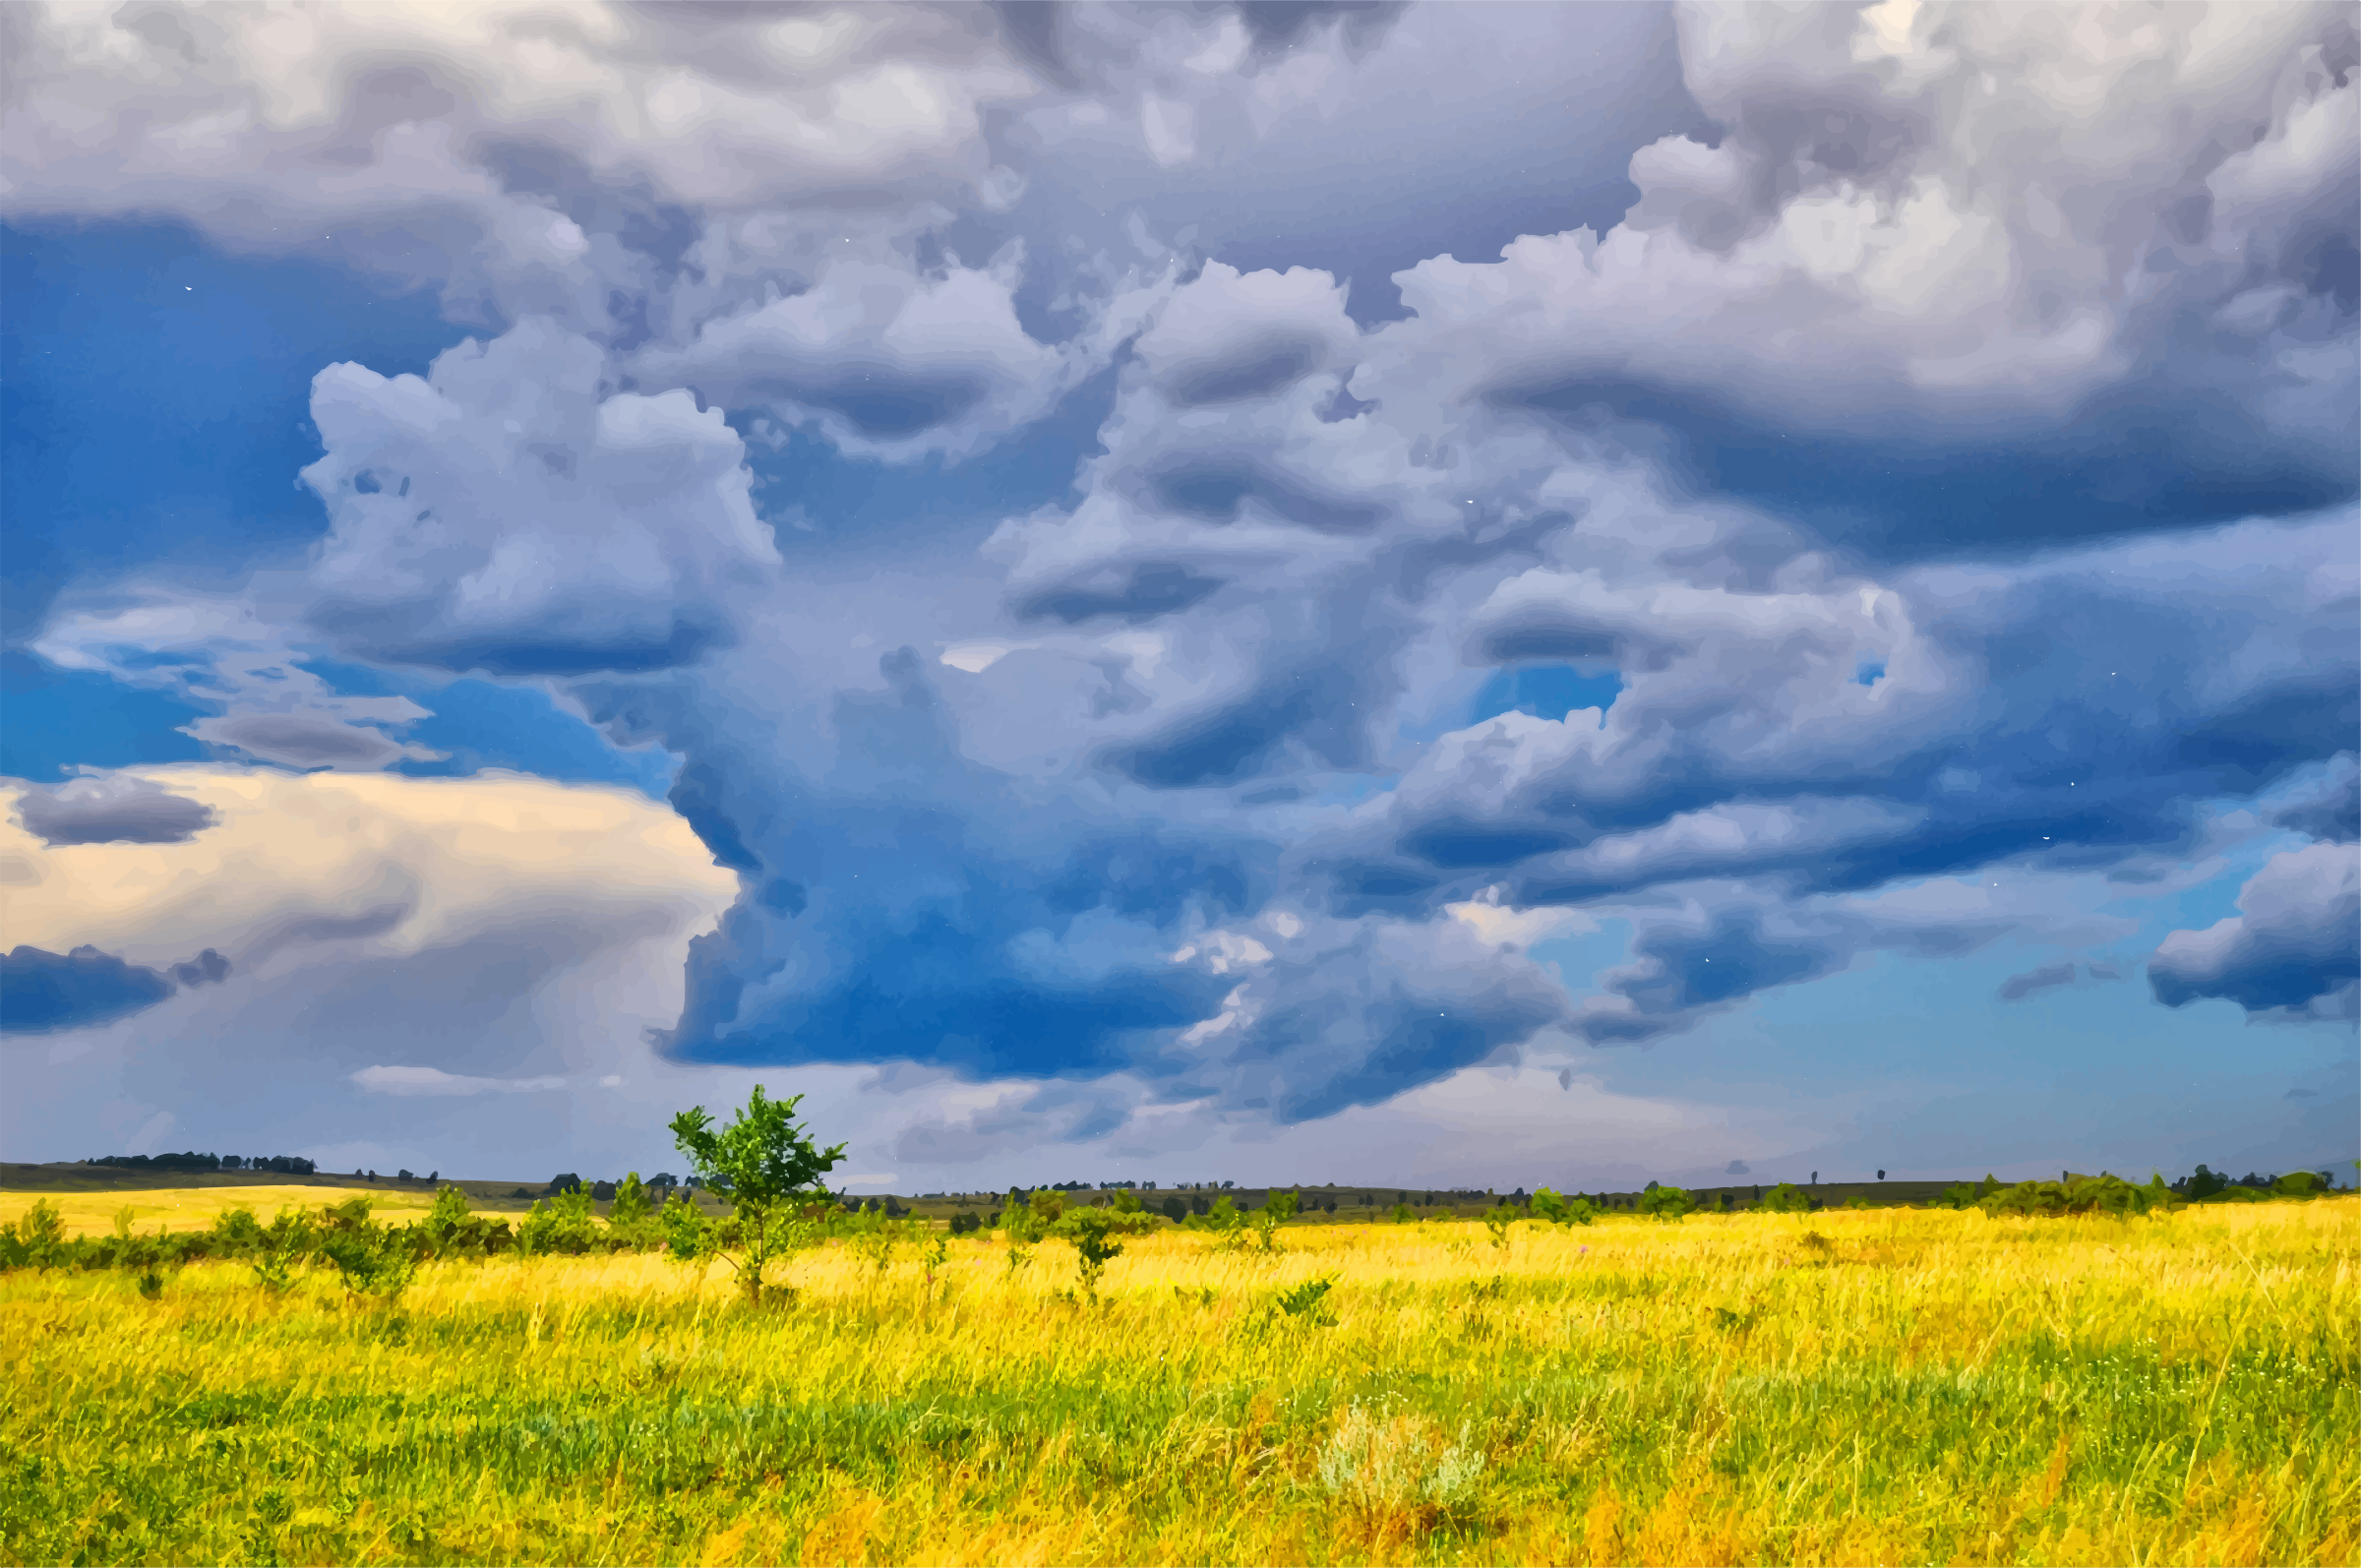 Dark Storm Clouds Over The Savannah by GDJ